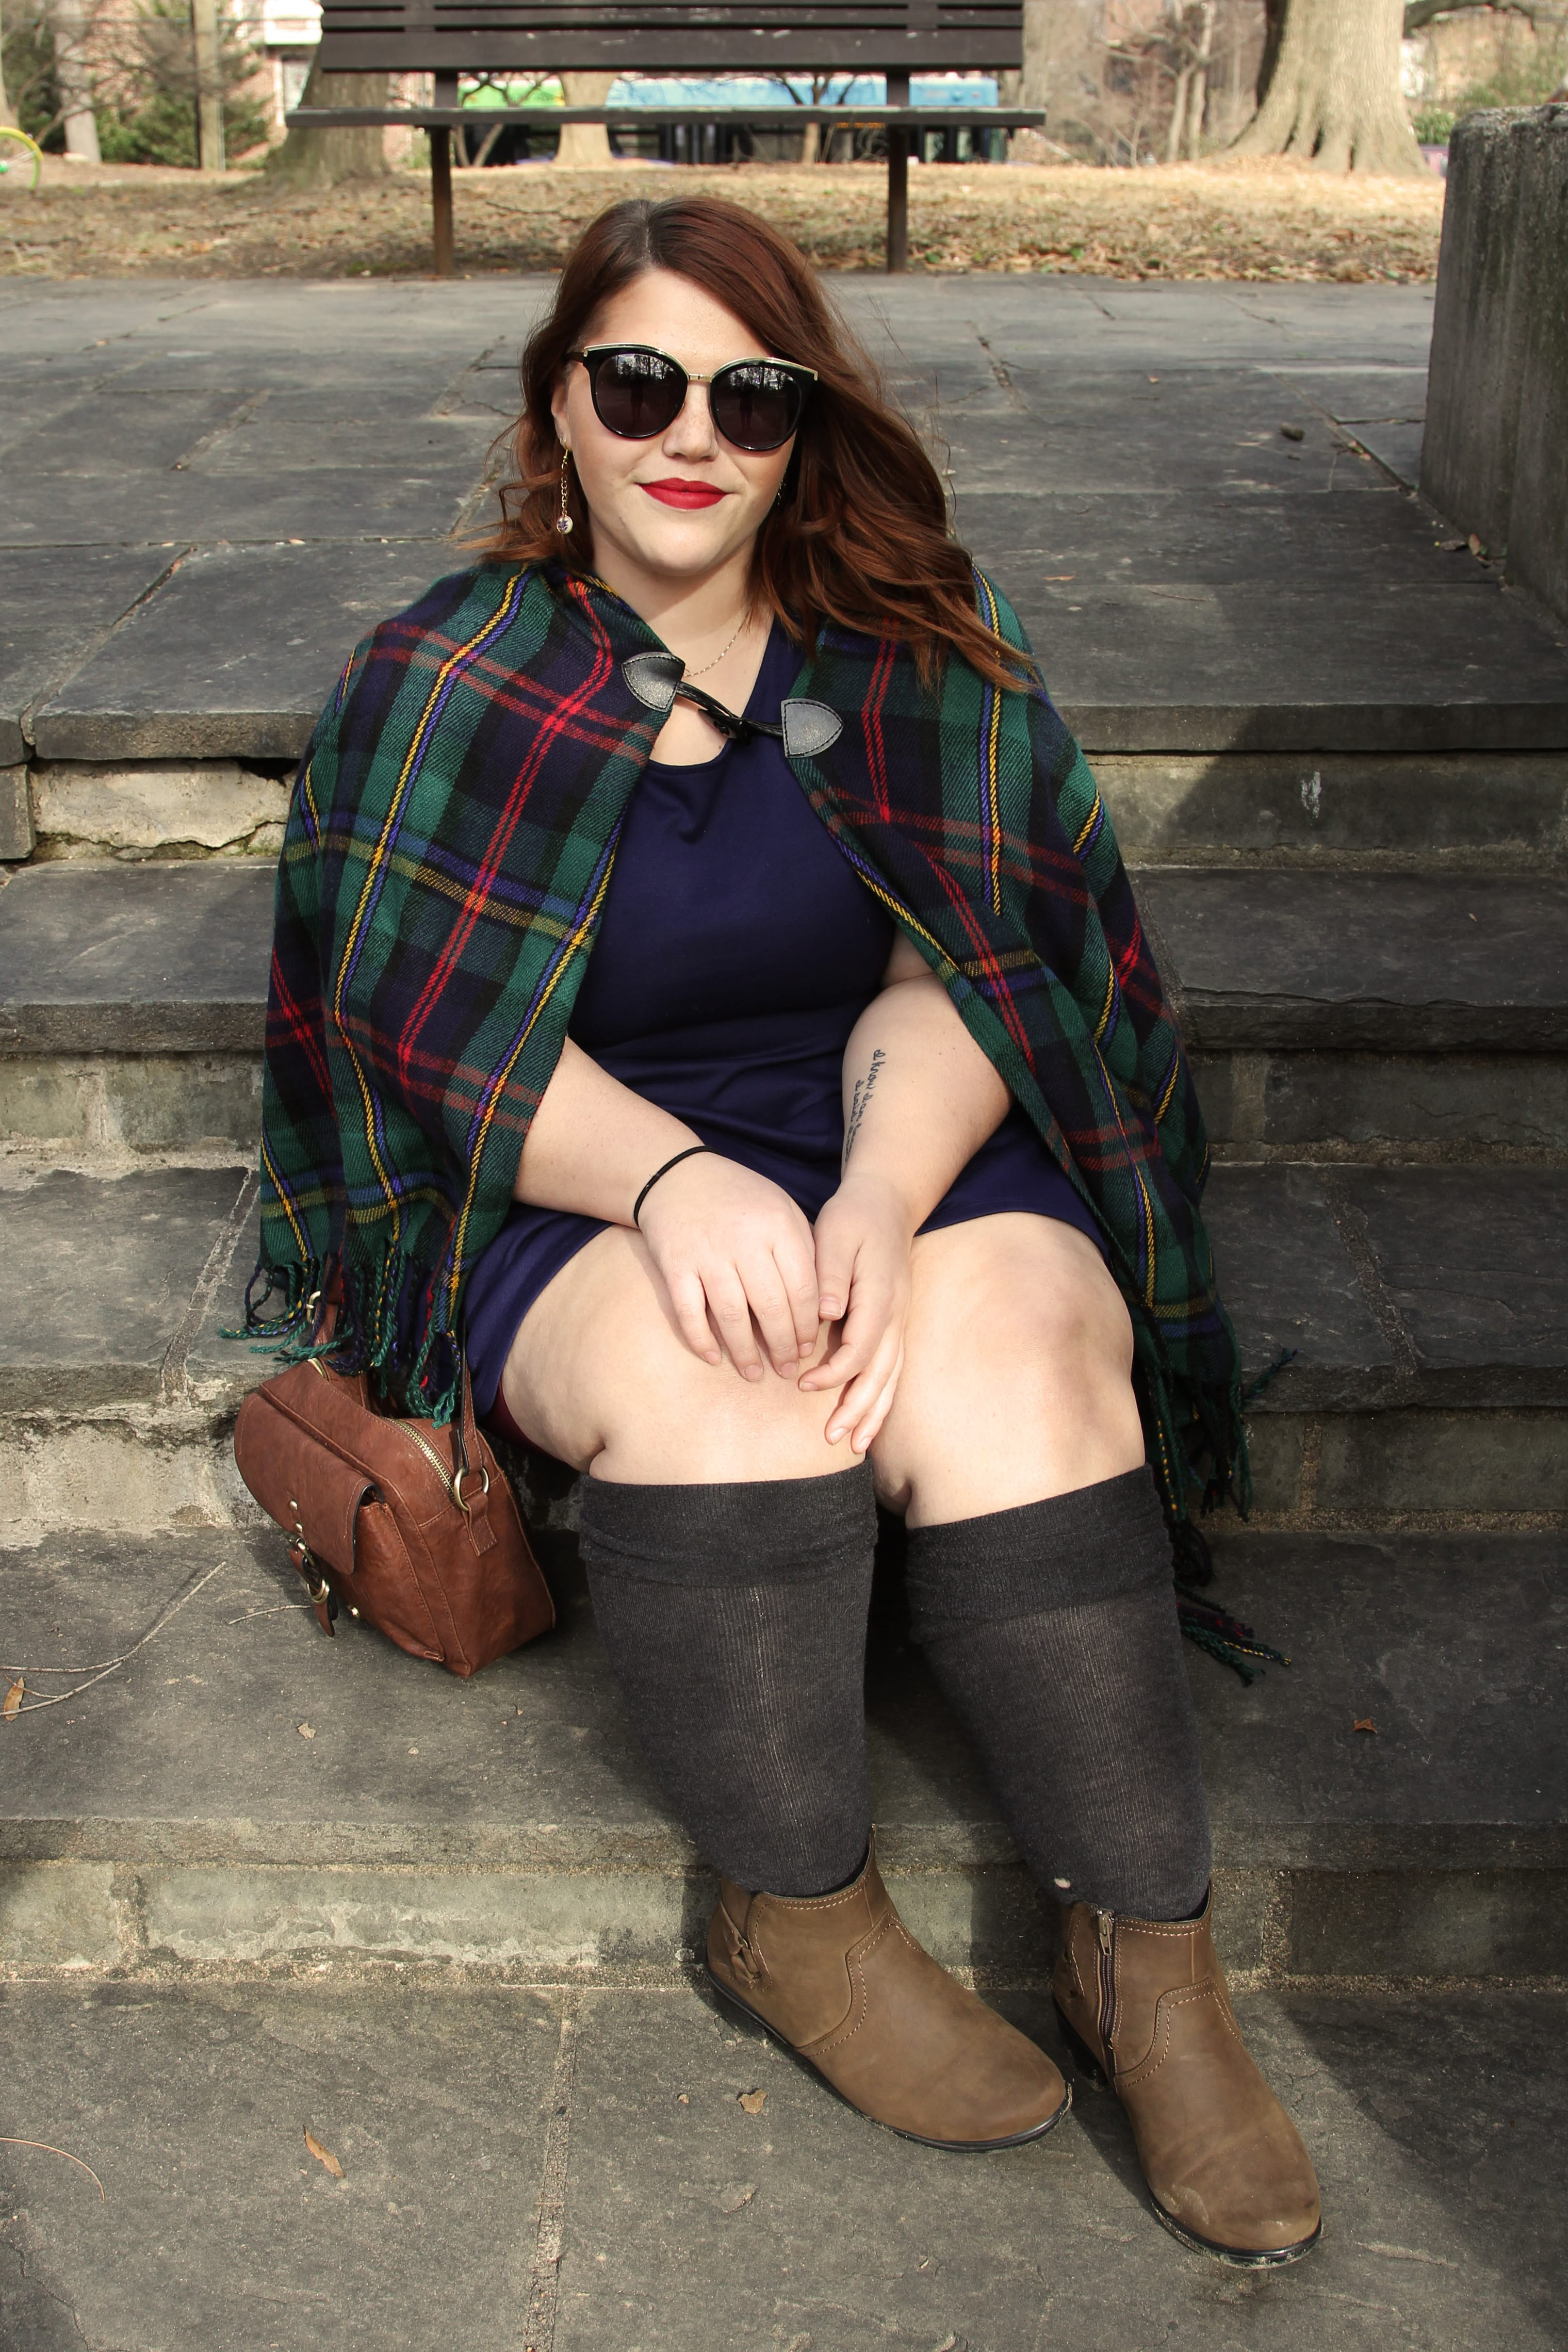 Femme woman sitting on stone stairs wearing a blue dress, grey knee socks, a plaid cape, red lipstick, big sunglasses, and smiling.